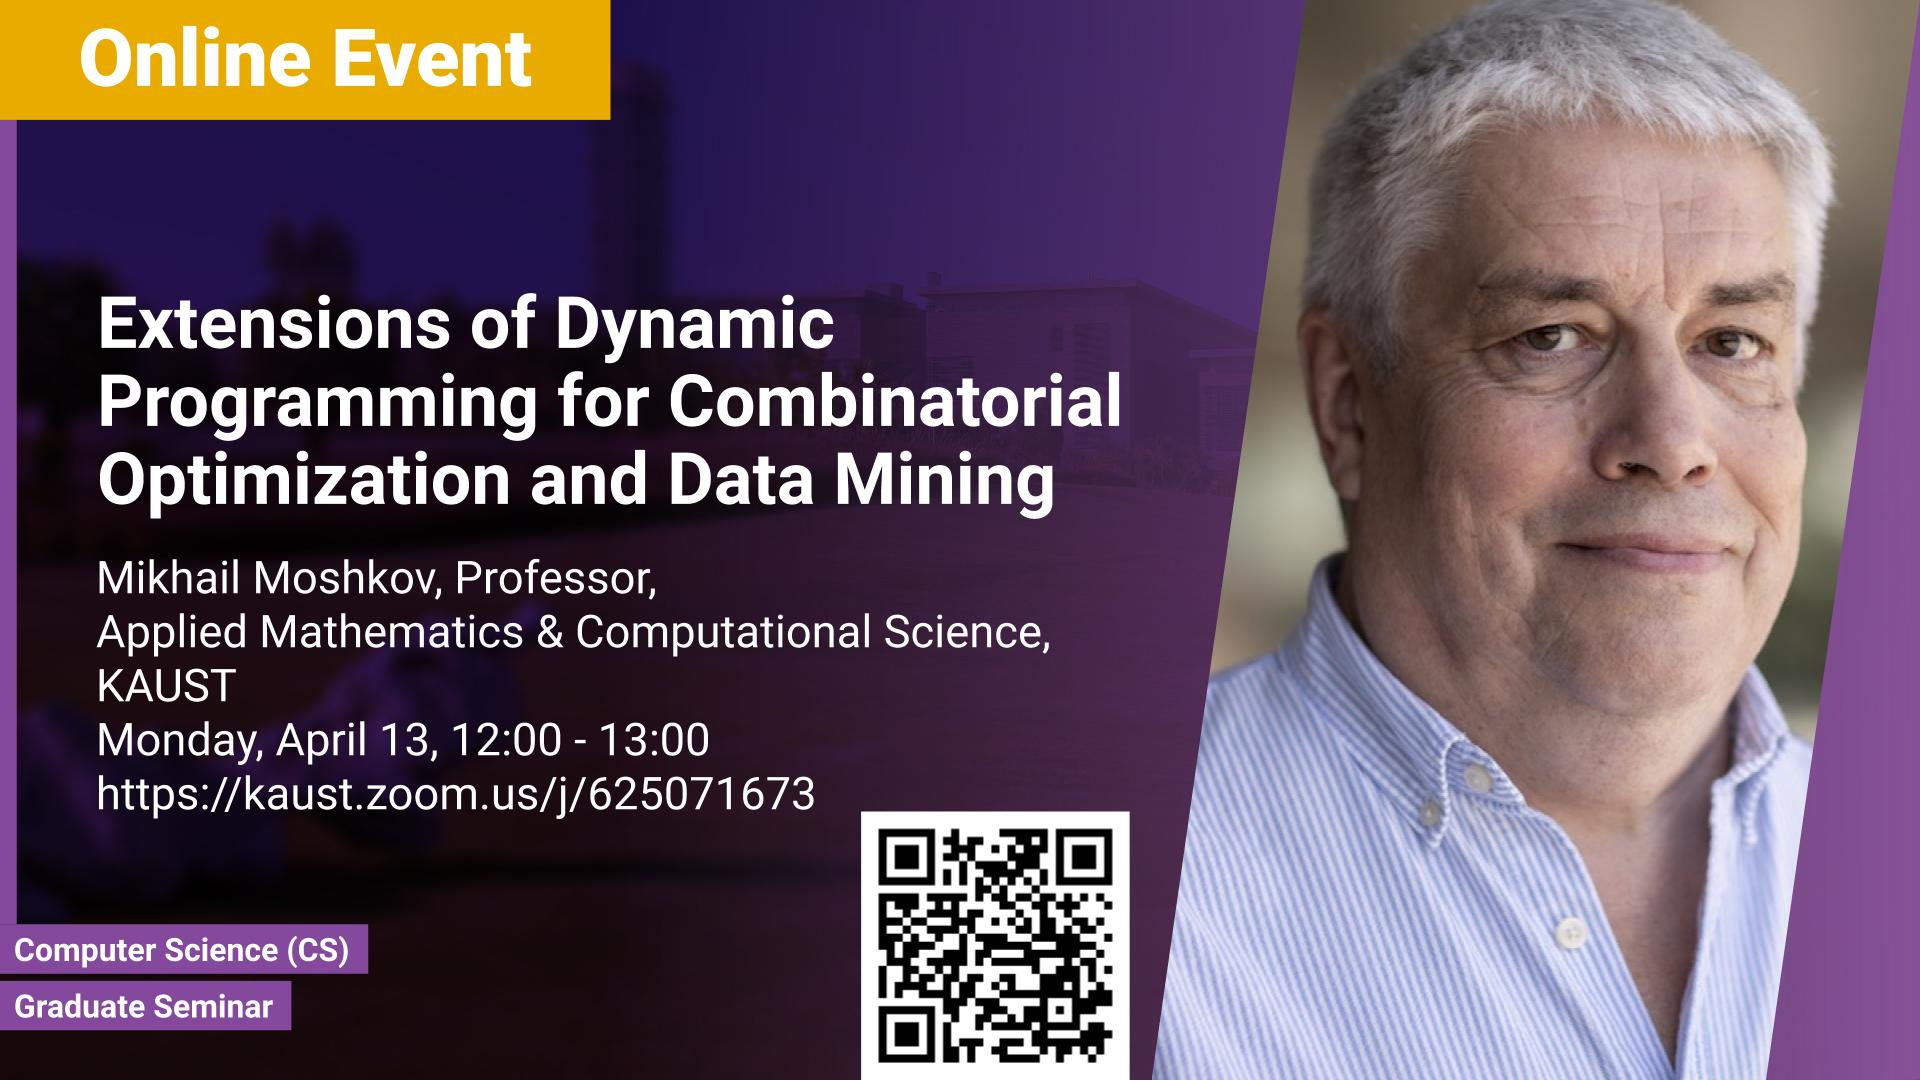 KAUST CEMSE CS Graduate Seminar Mikhail Moshkov Extensions of Dynamic Programming for Combinatorial Optimization and Data Mining